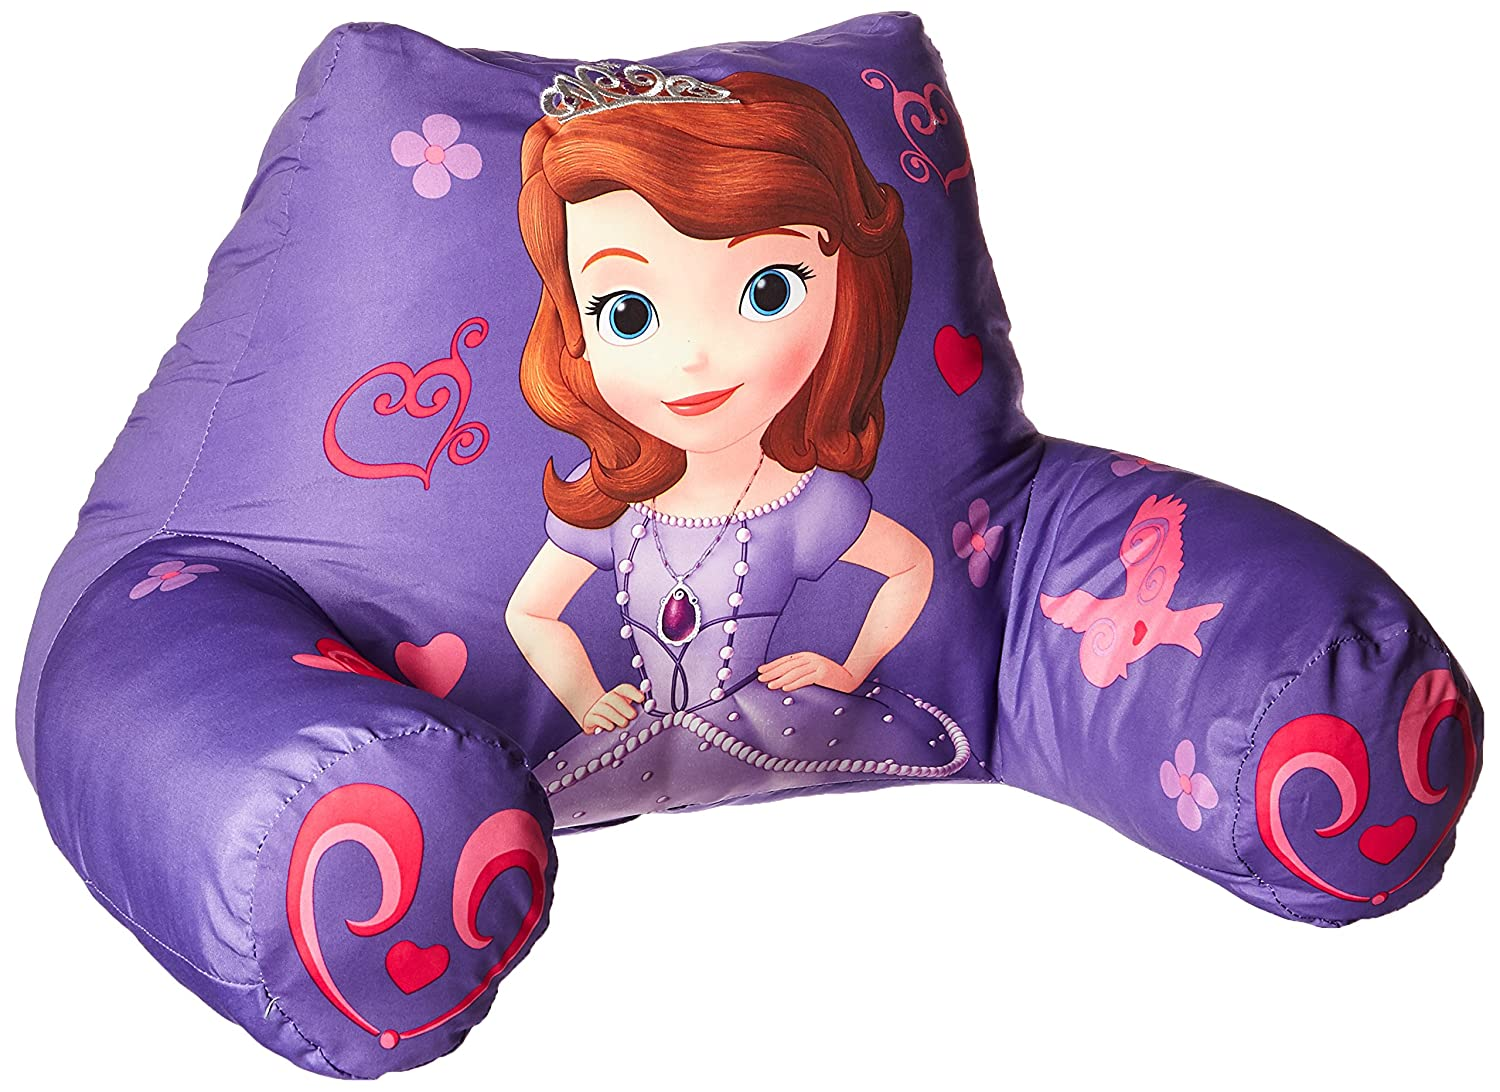 Disney Junior Sofia The First Bed Rest Jay Franco and Sons Inc JF27017TRUCD